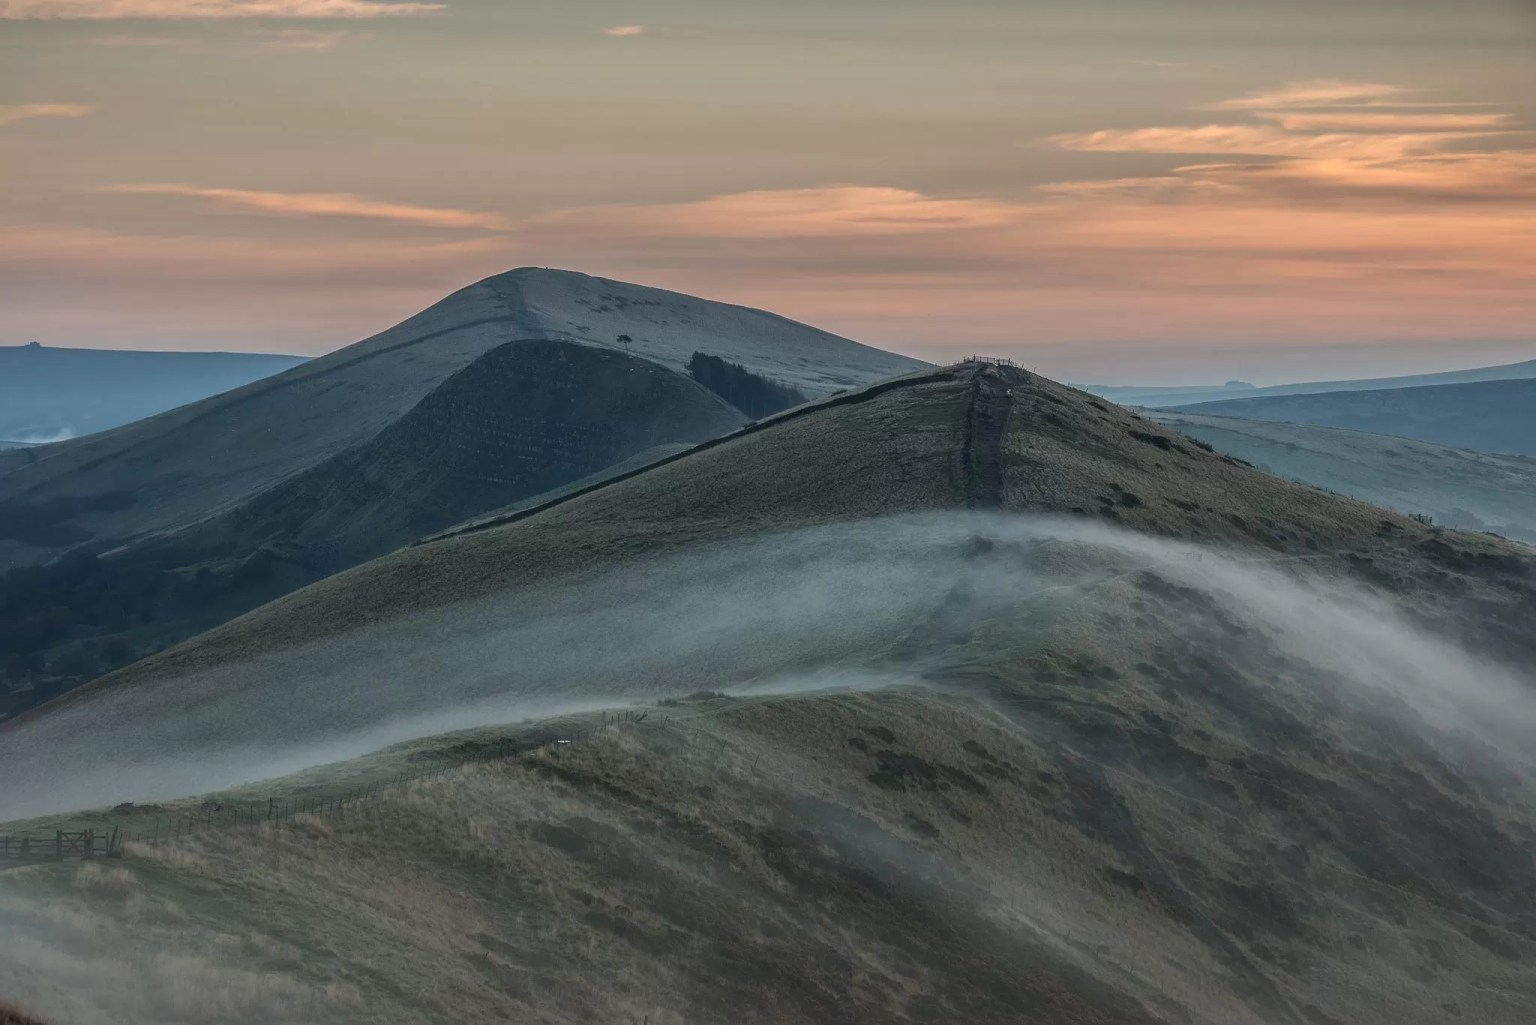 Back Tor and Lose Hill on the Great Ridge as seen from Mam Tor as mist creeps over it - Mam Tor Photography Location Guide